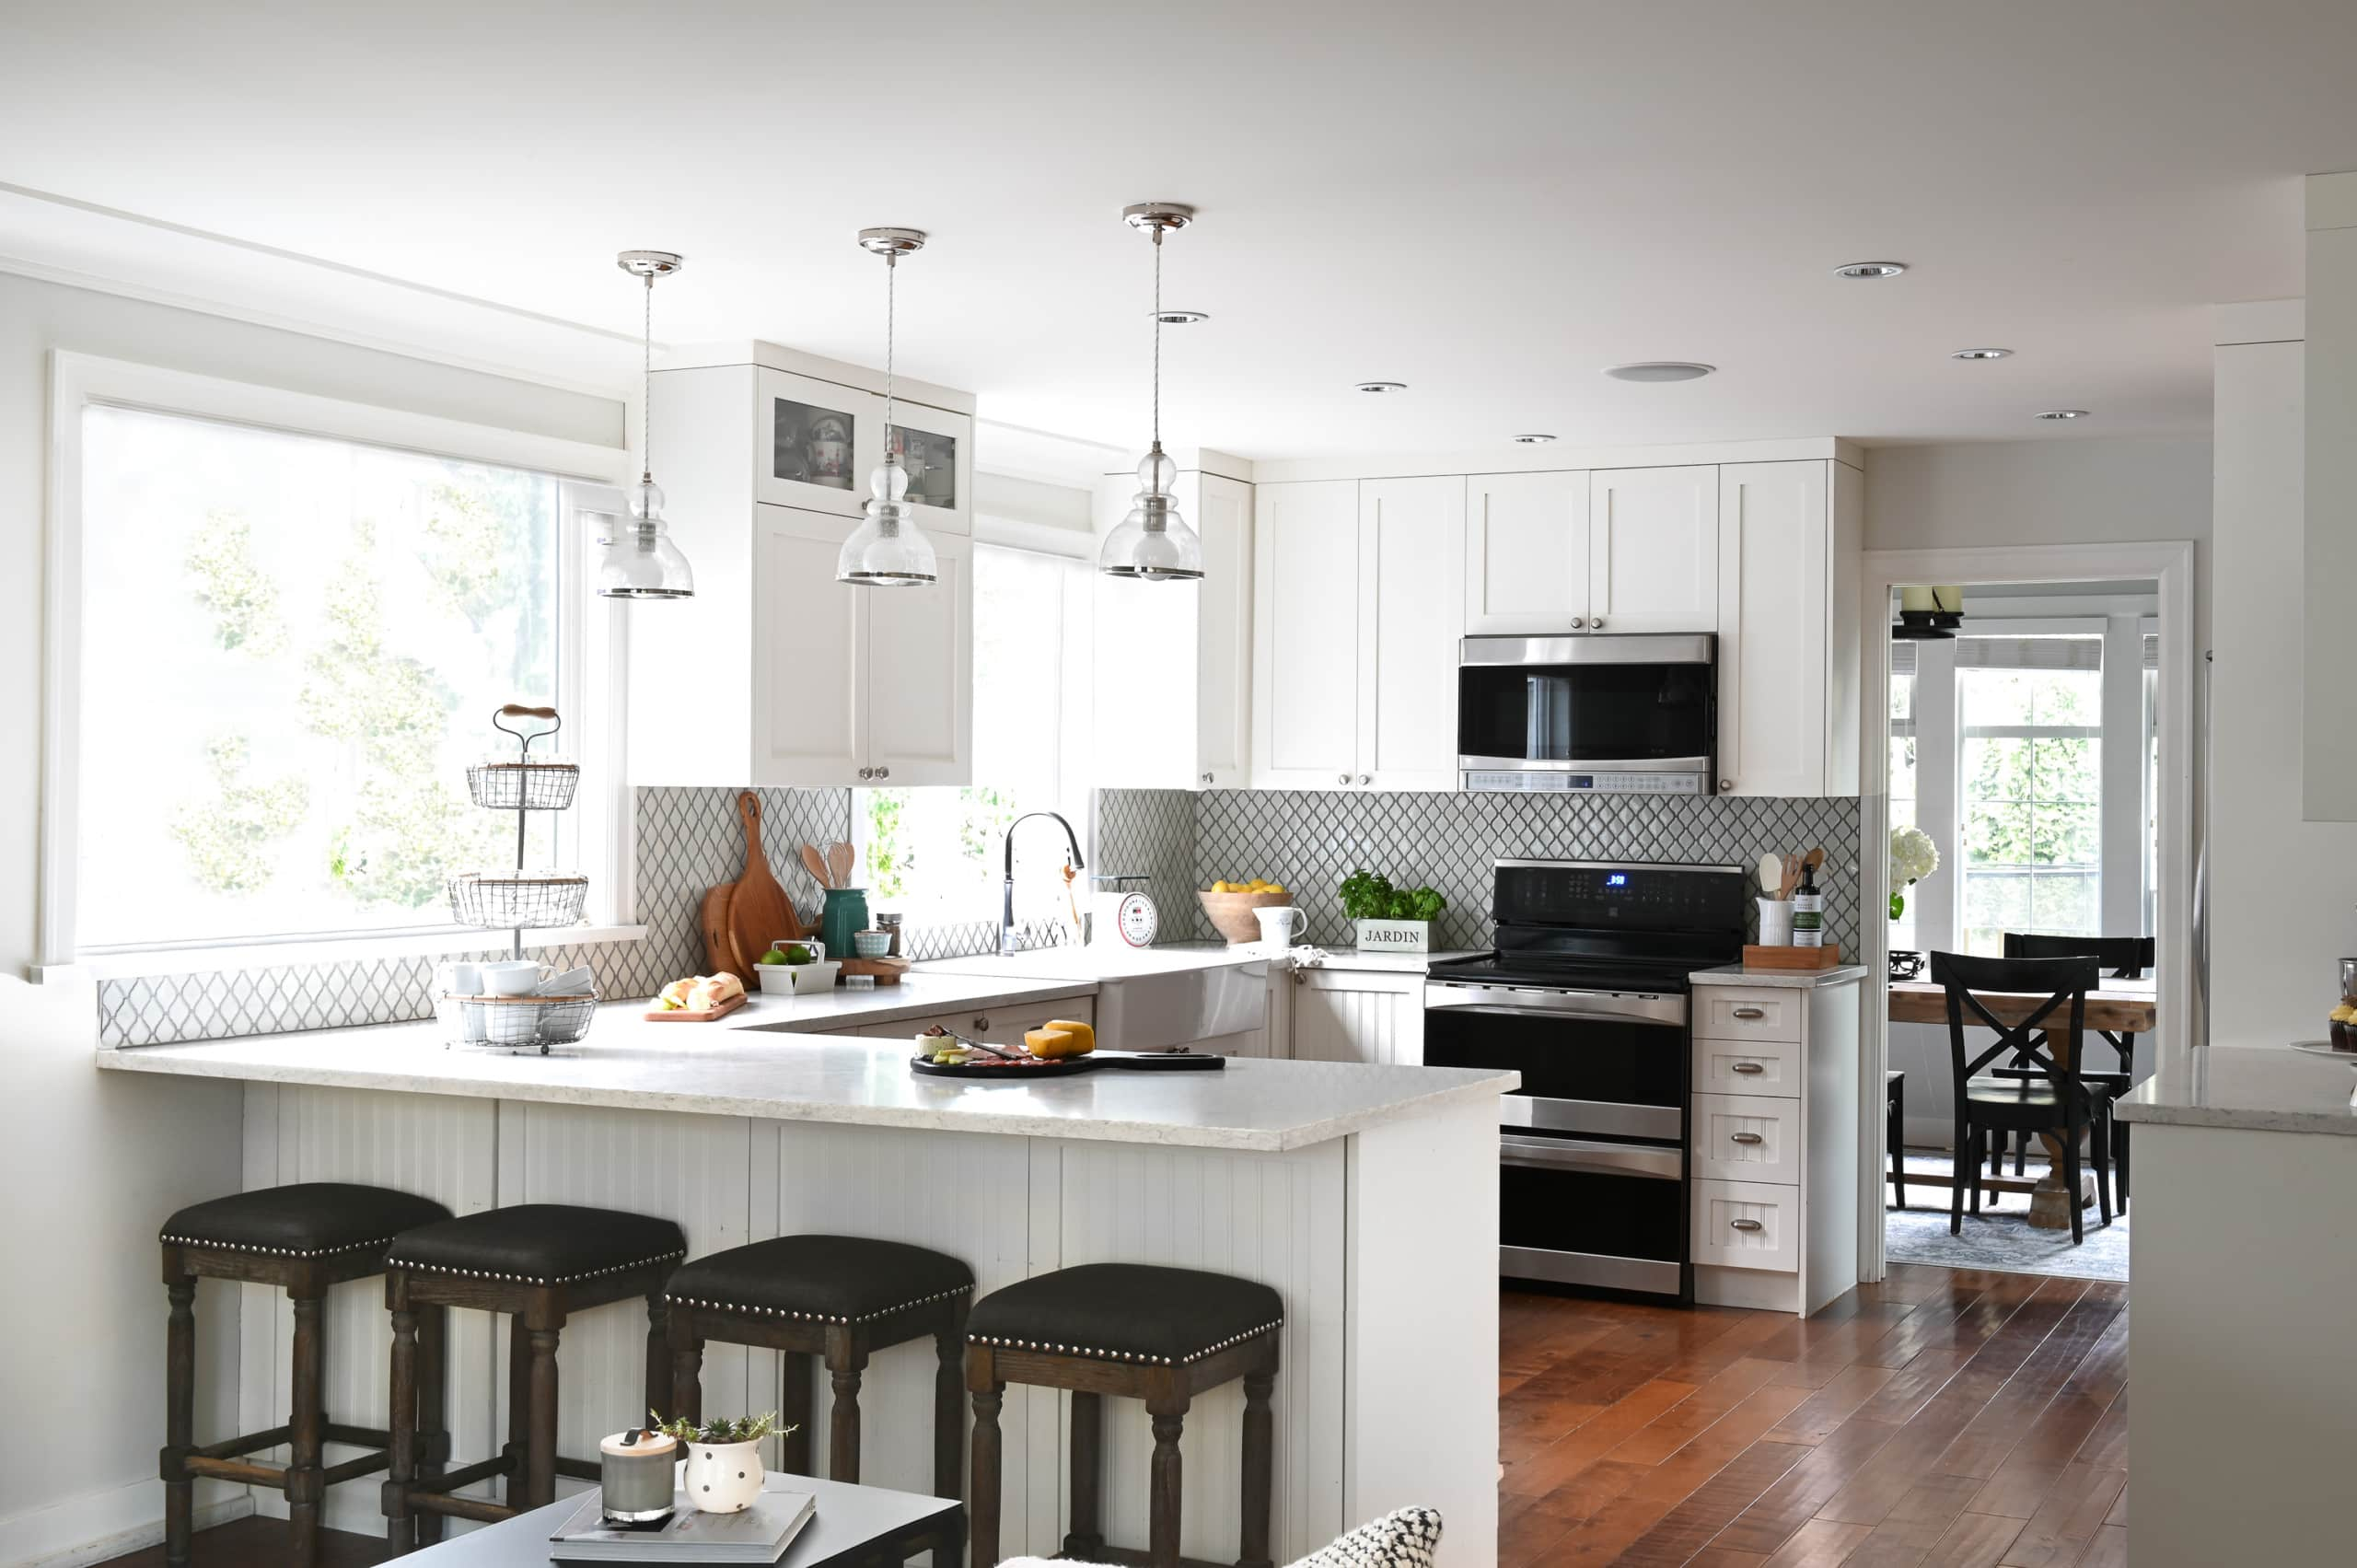 White and bright kitchen